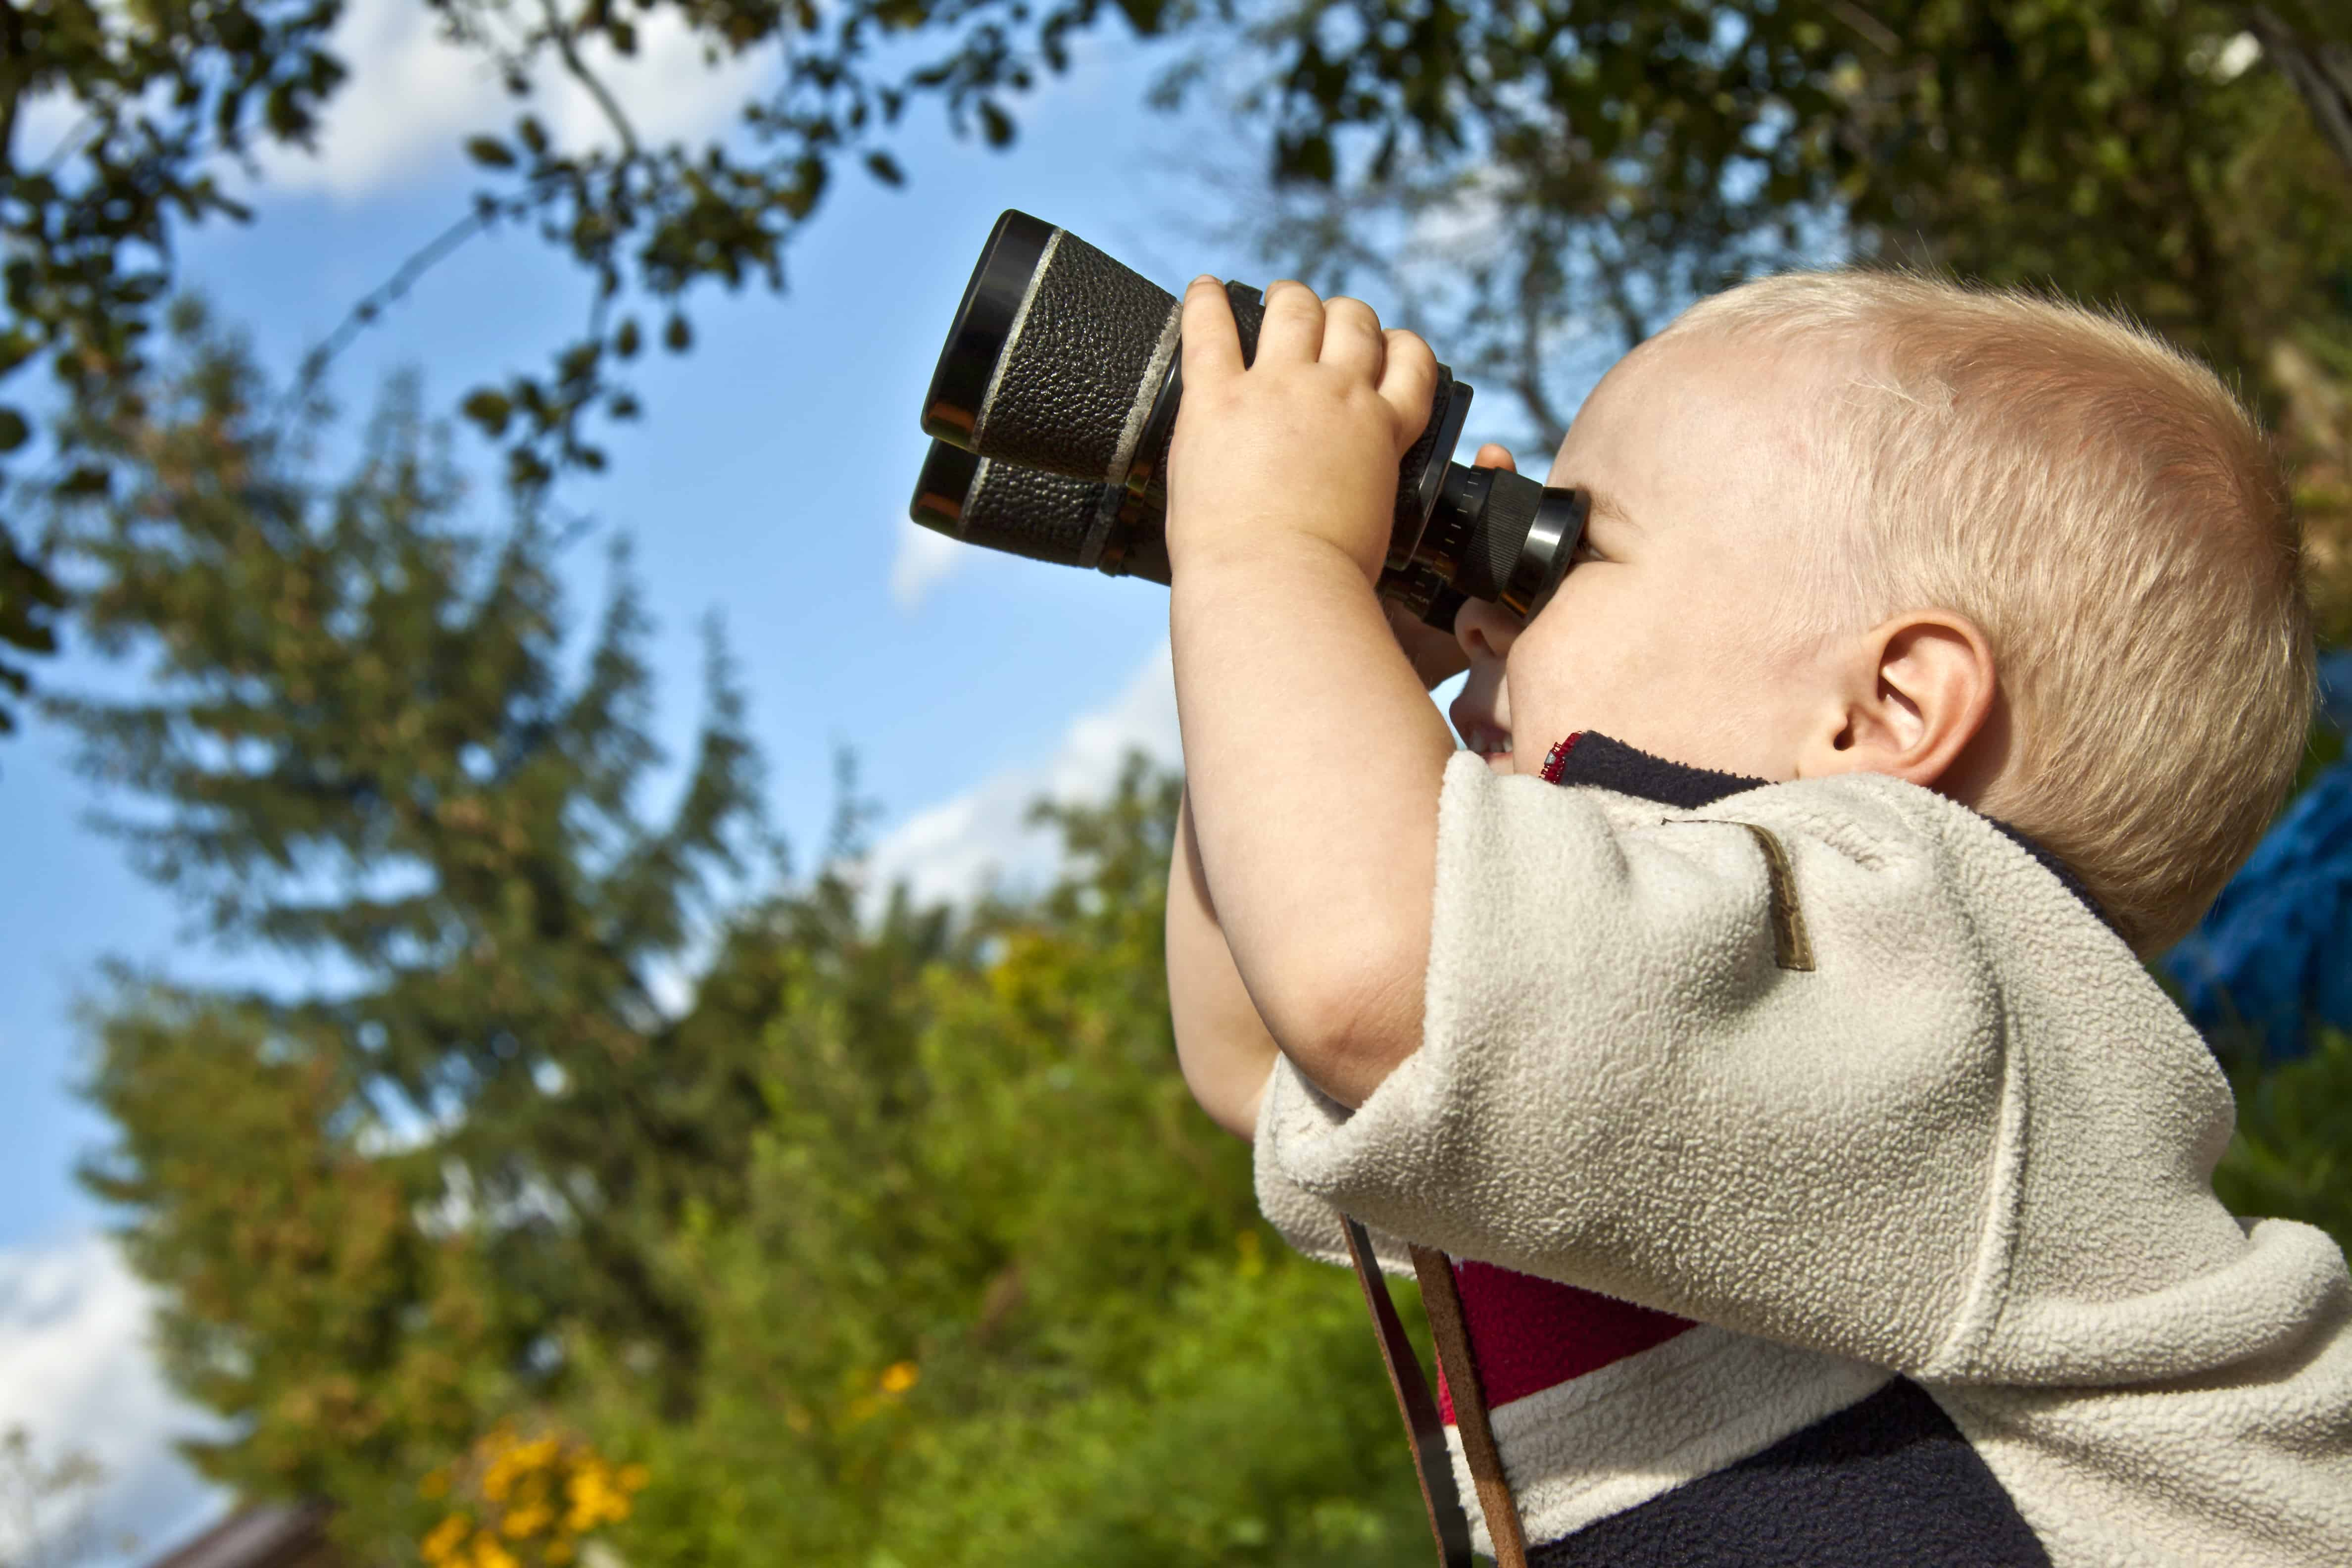 Birdwatching and Hunting with Binoculars